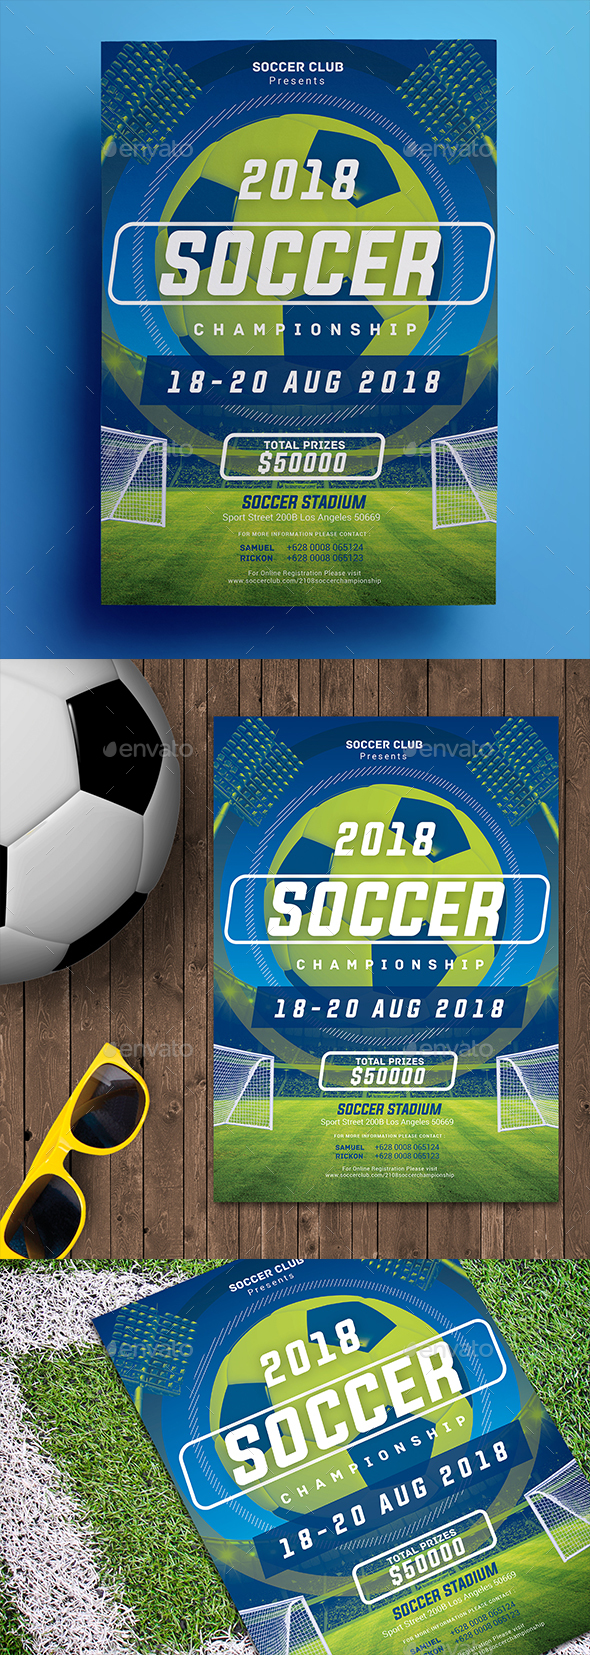 Soccer Championship Flyer 02 - Sports Events